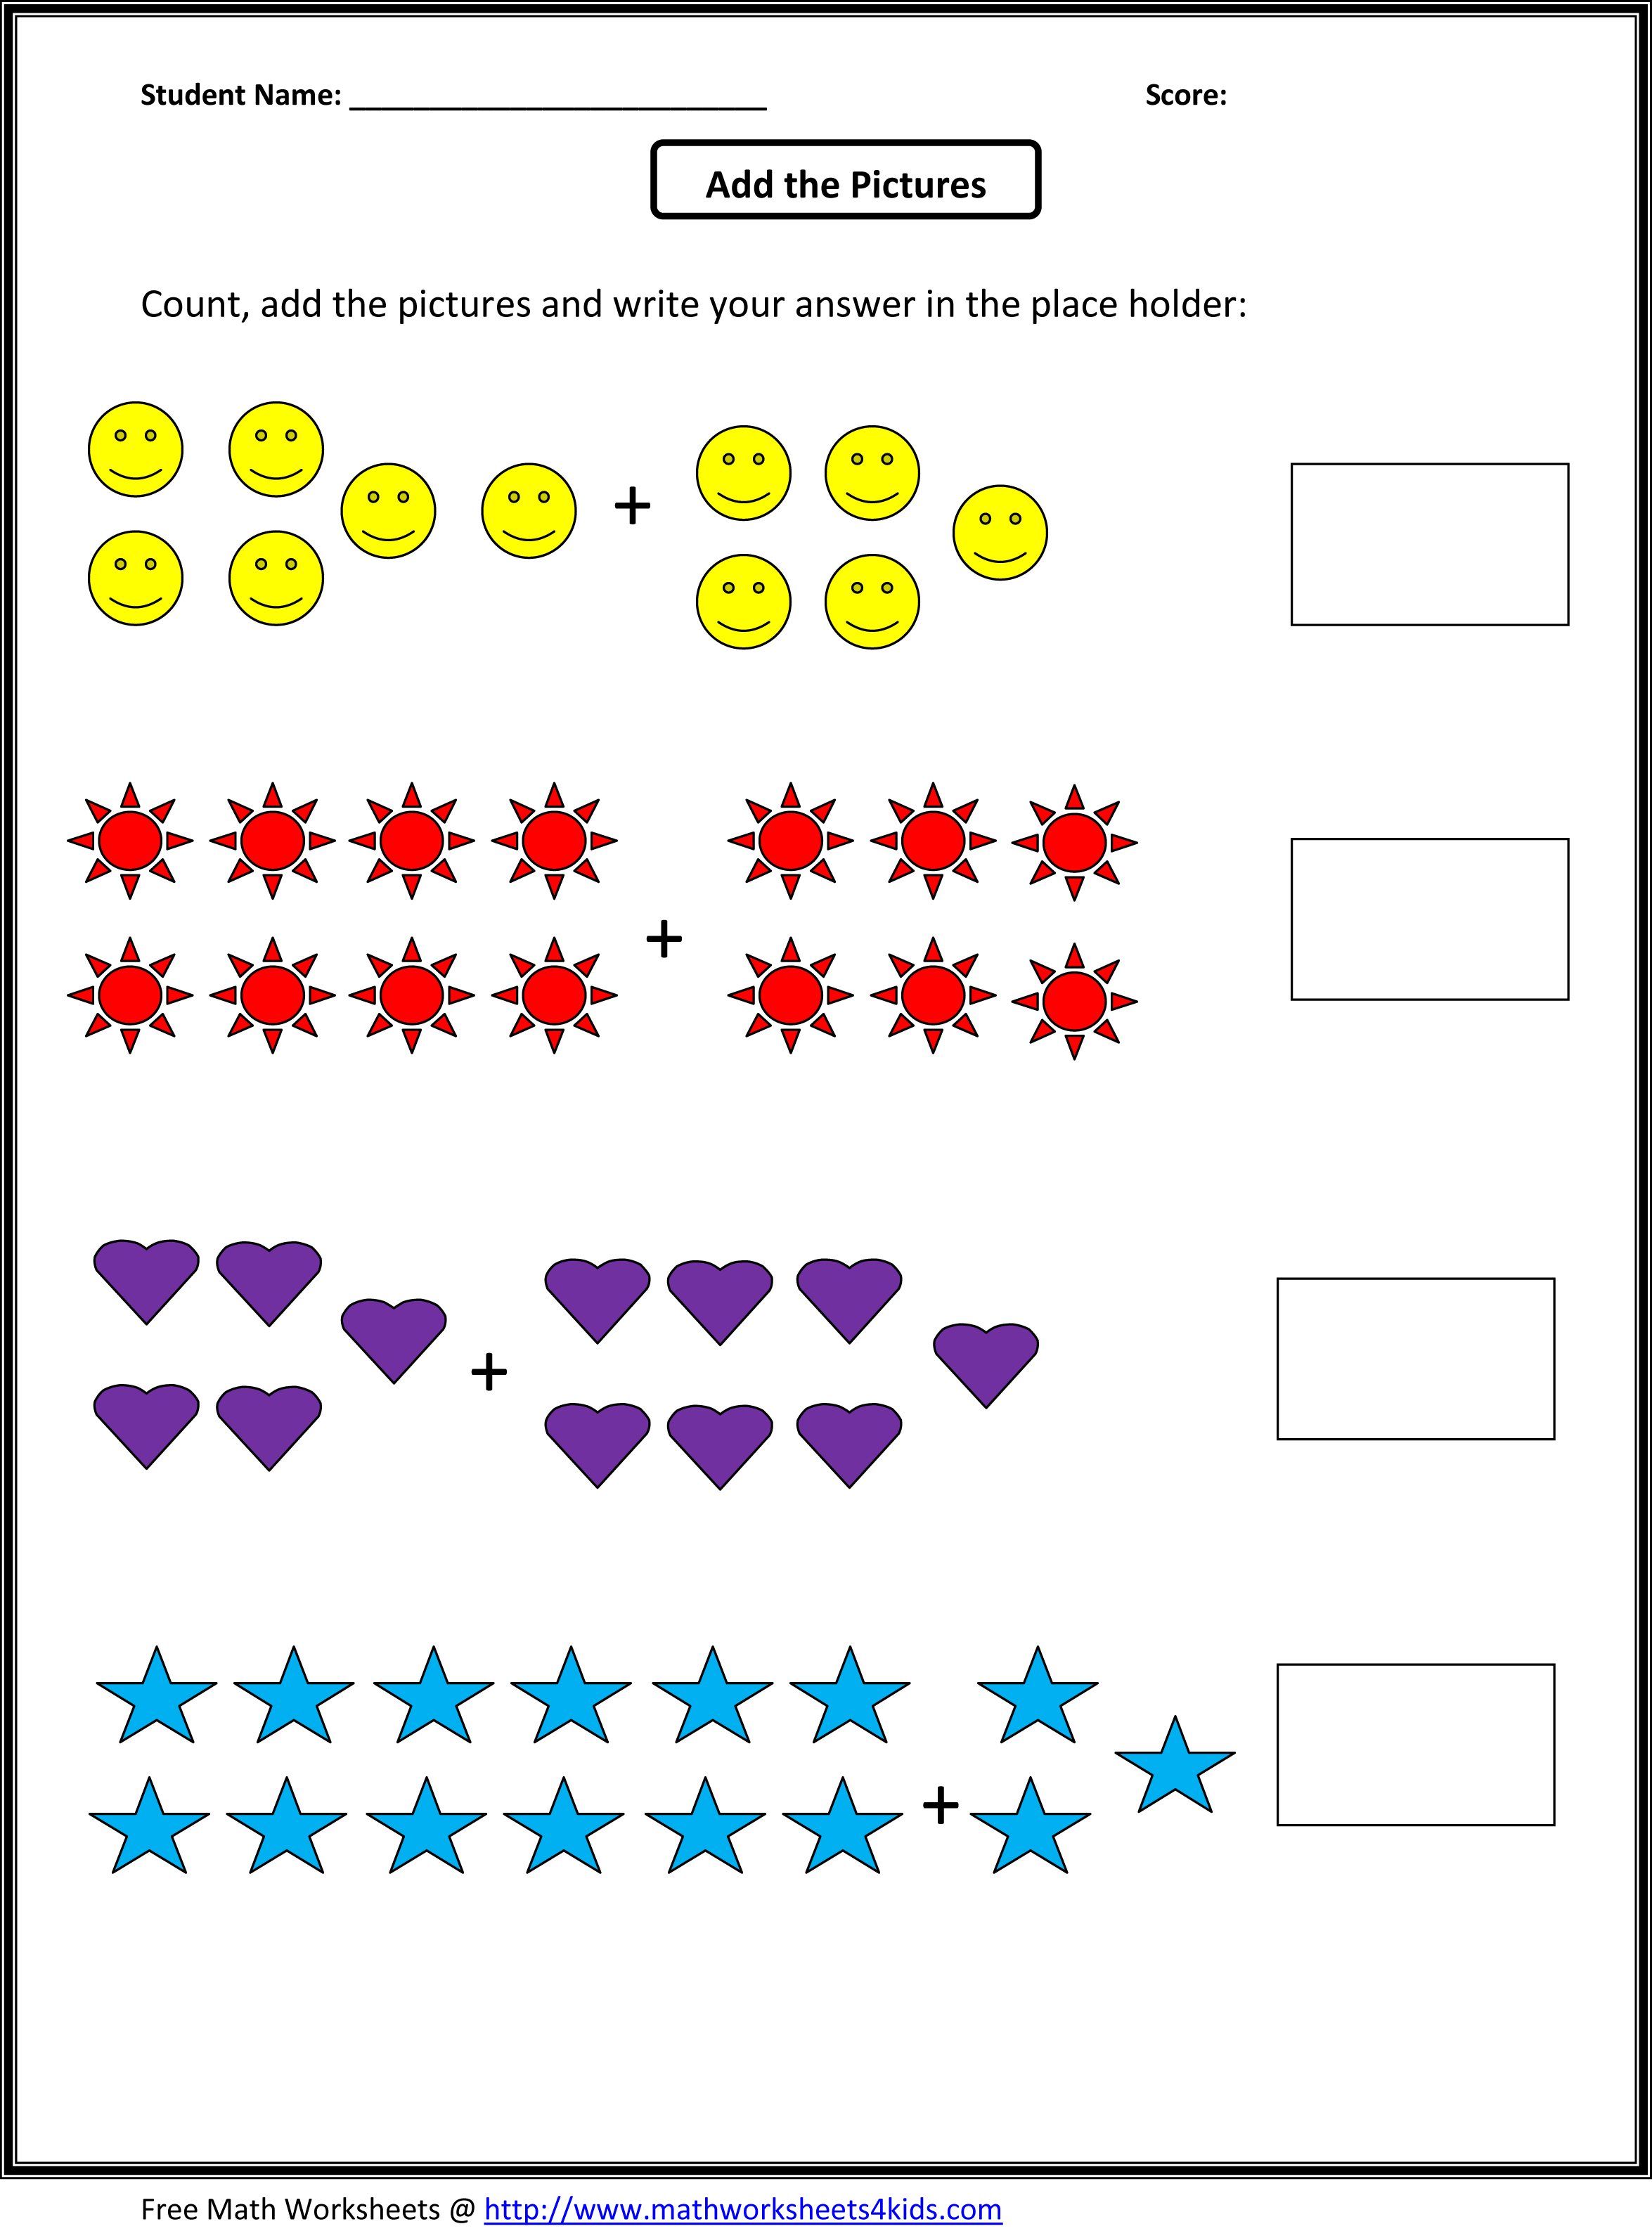 Proatmealus  Ravishing Grade  Maths Worksheet  Reocurent With Remarkable Math Worksheets For St Grade Free  Reocurent With Delightful Pie Chart Worksheets Ks Also Worksheets On Adjectives For Grade  In Addition Idioms Worksheets For Kids And Printable Latitude And Longitude Worksheets As Well As Early Years Maths Worksheets Additionally Merge Worksheets Excel From Reocurentcom With Proatmealus  Remarkable Grade  Maths Worksheet  Reocurent With Delightful Math Worksheets For St Grade Free  Reocurent And Ravishing Pie Chart Worksheets Ks Also Worksheets On Adjectives For Grade  In Addition Idioms Worksheets For Kids From Reocurentcom